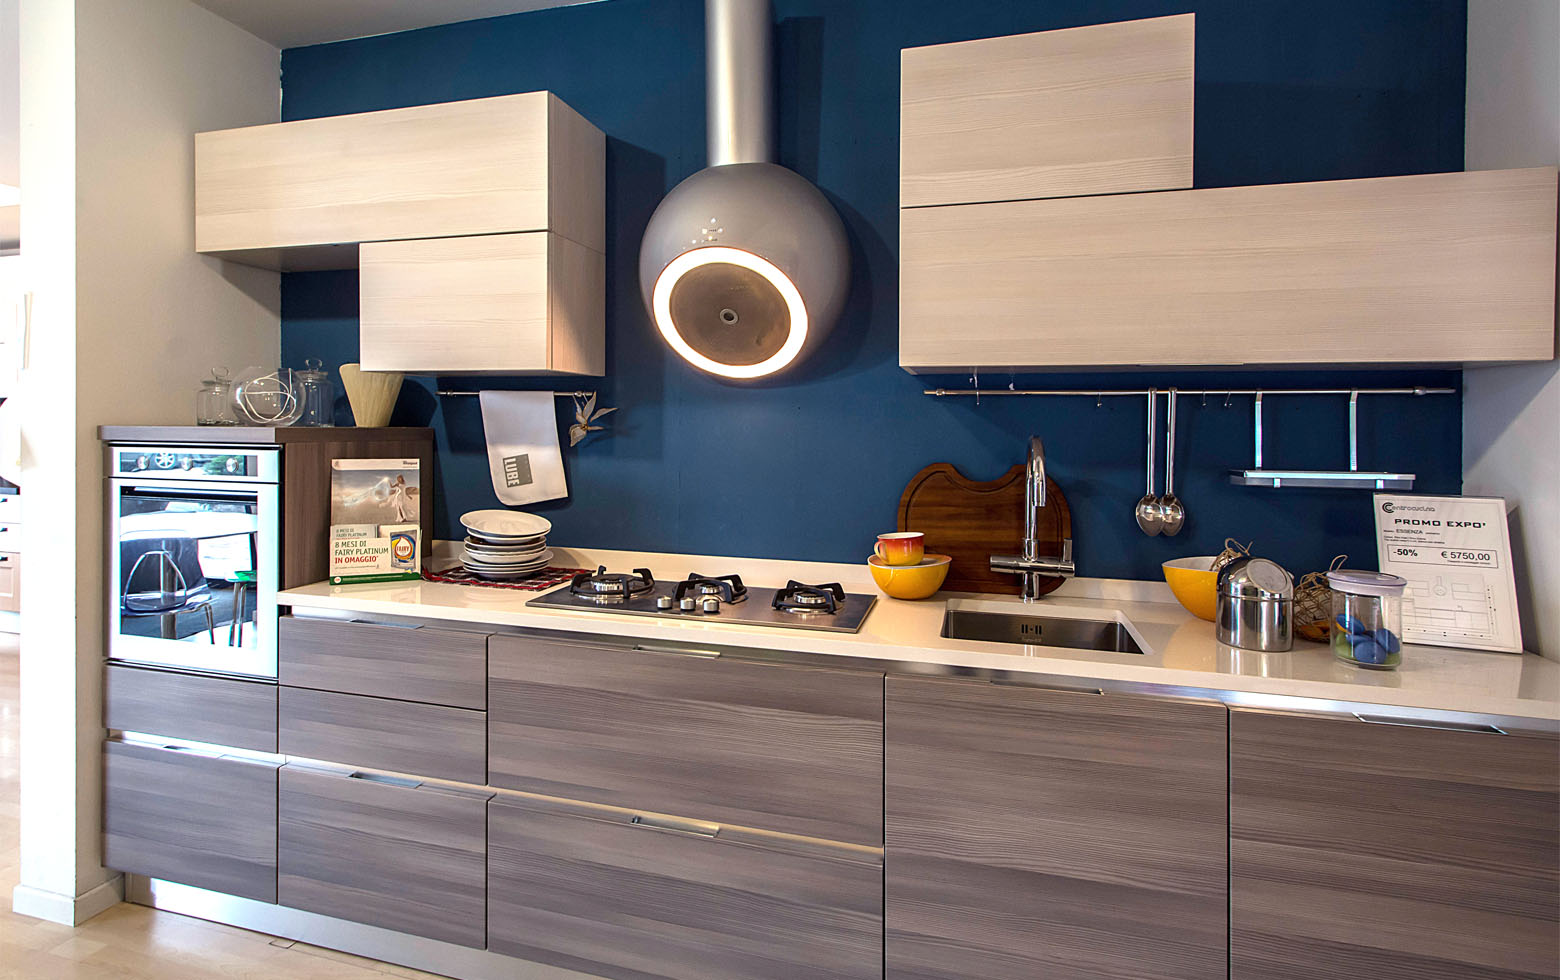 Awesome Cucine Lube Essenza Photos - Skilifts.us - skilifts.us